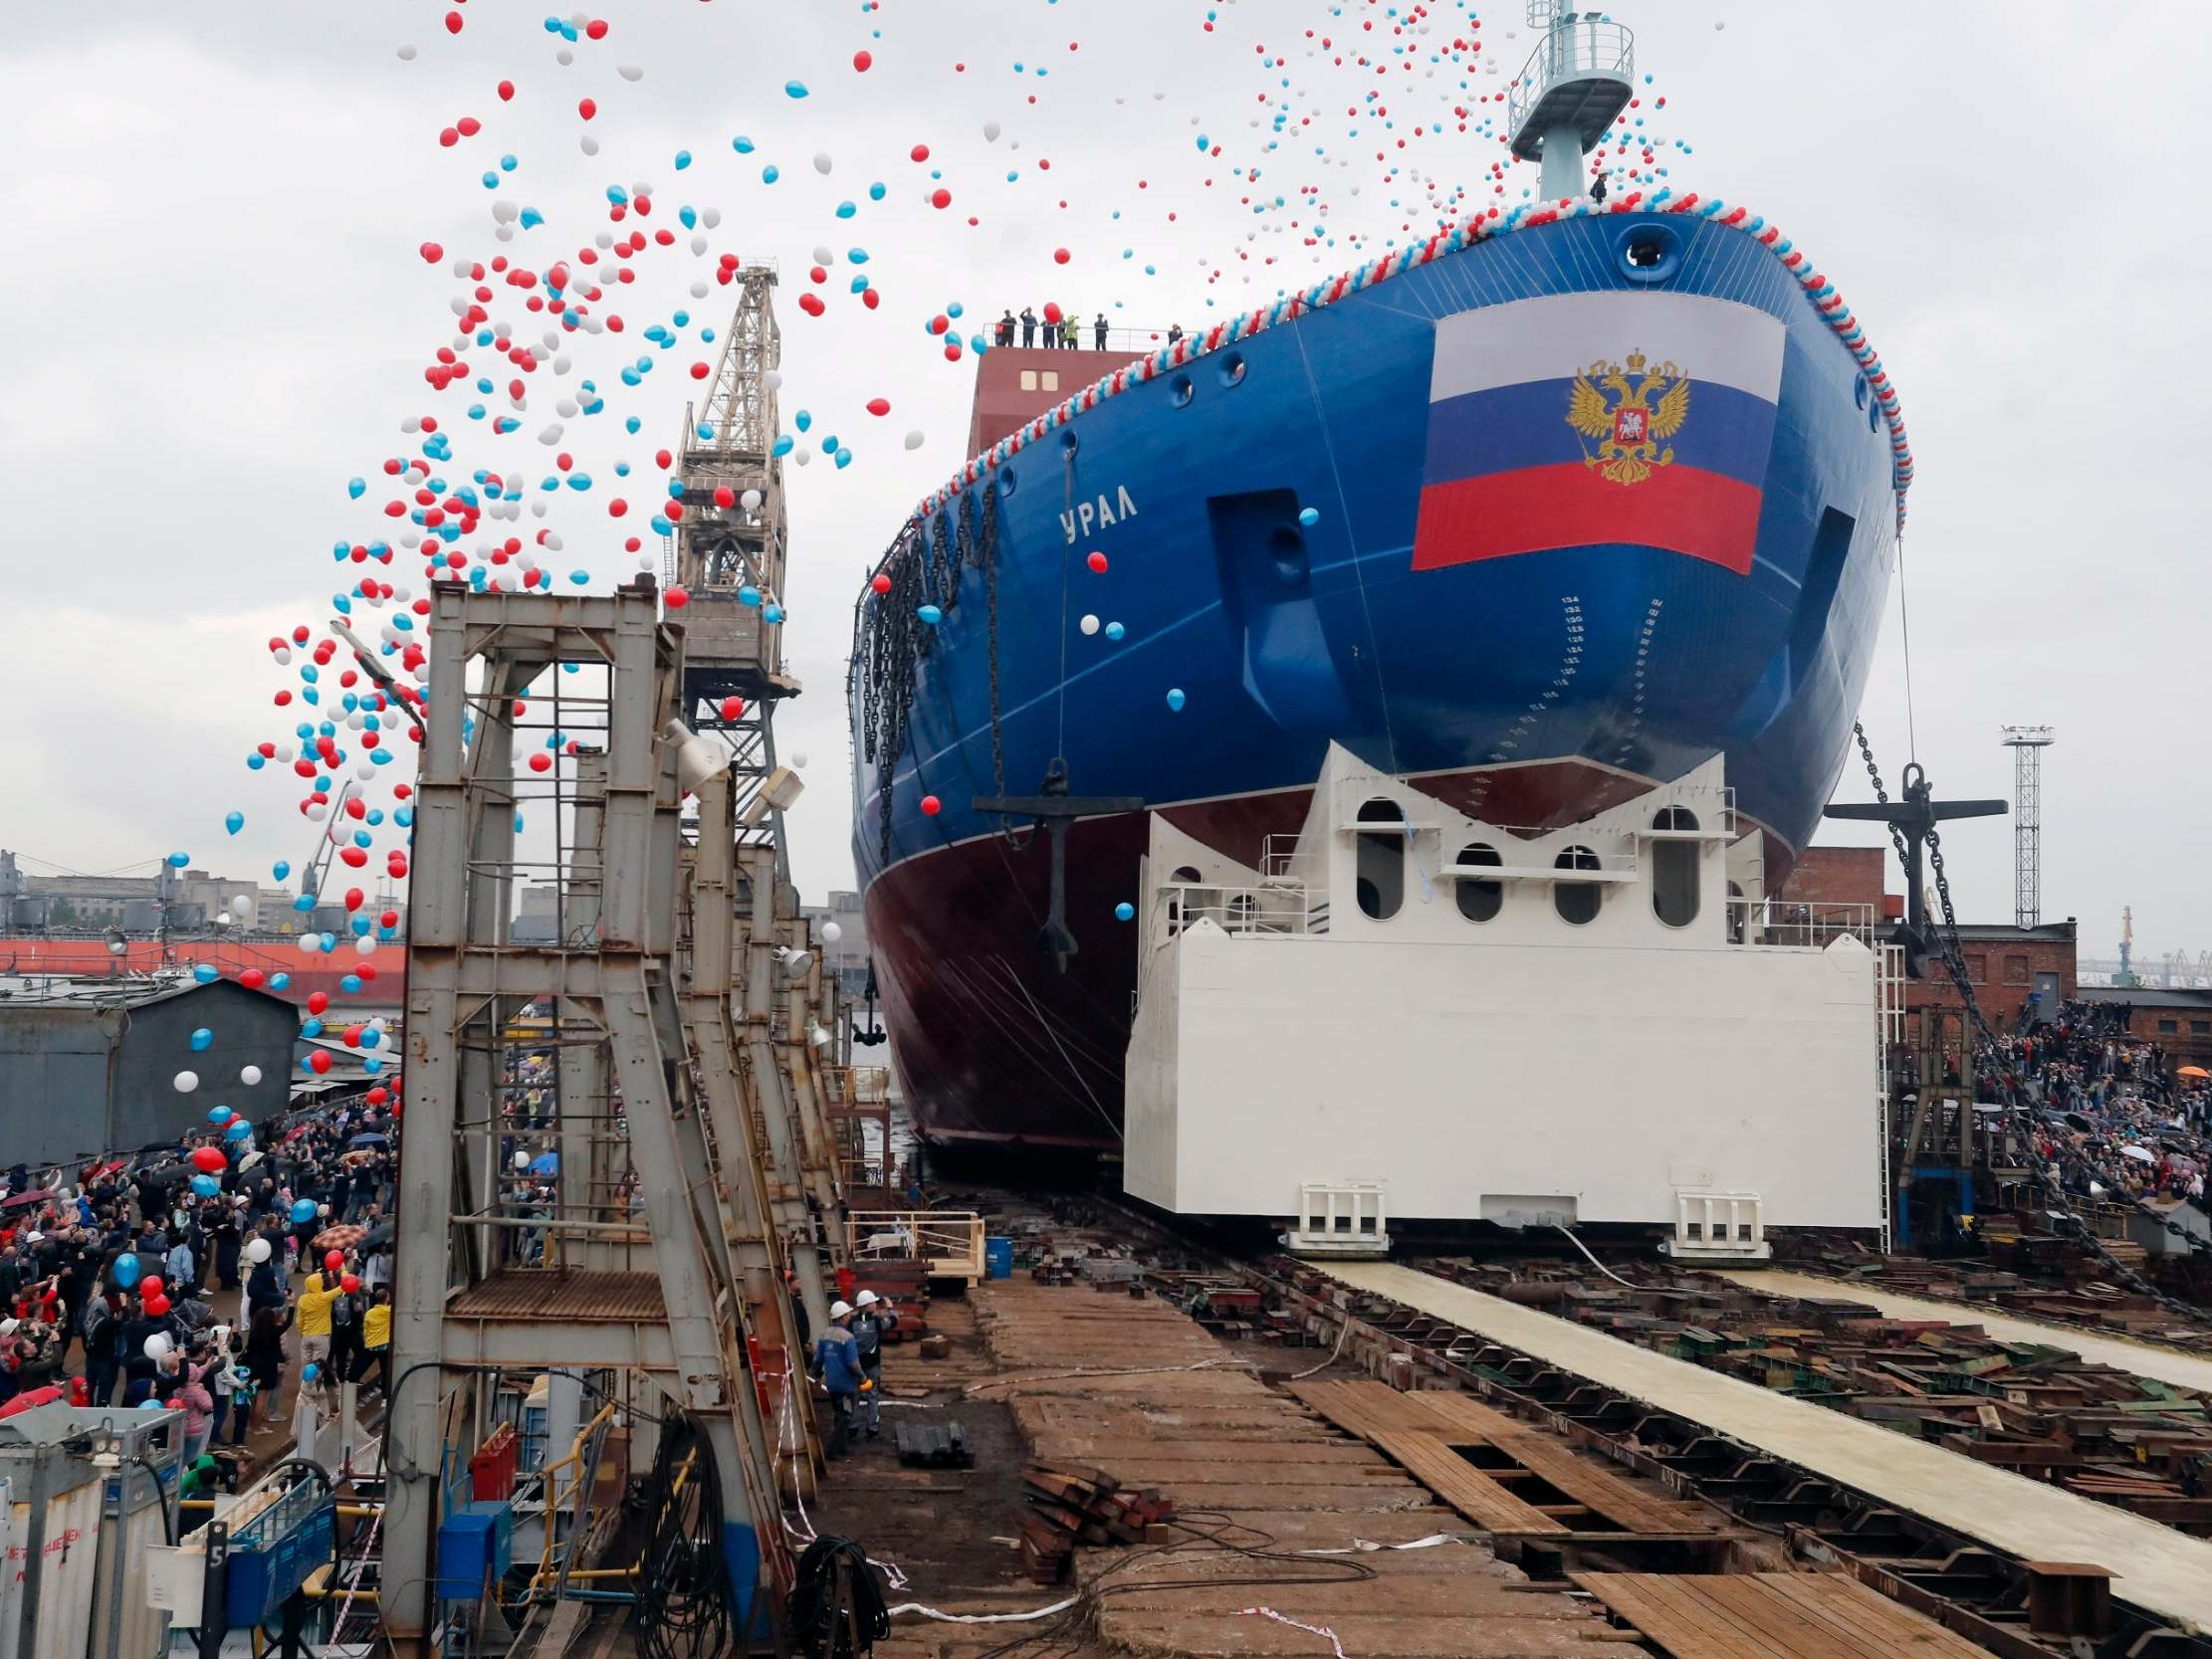 Russia launches world's largest nuclear-powered icebreaker to open up Arctic shipping routes